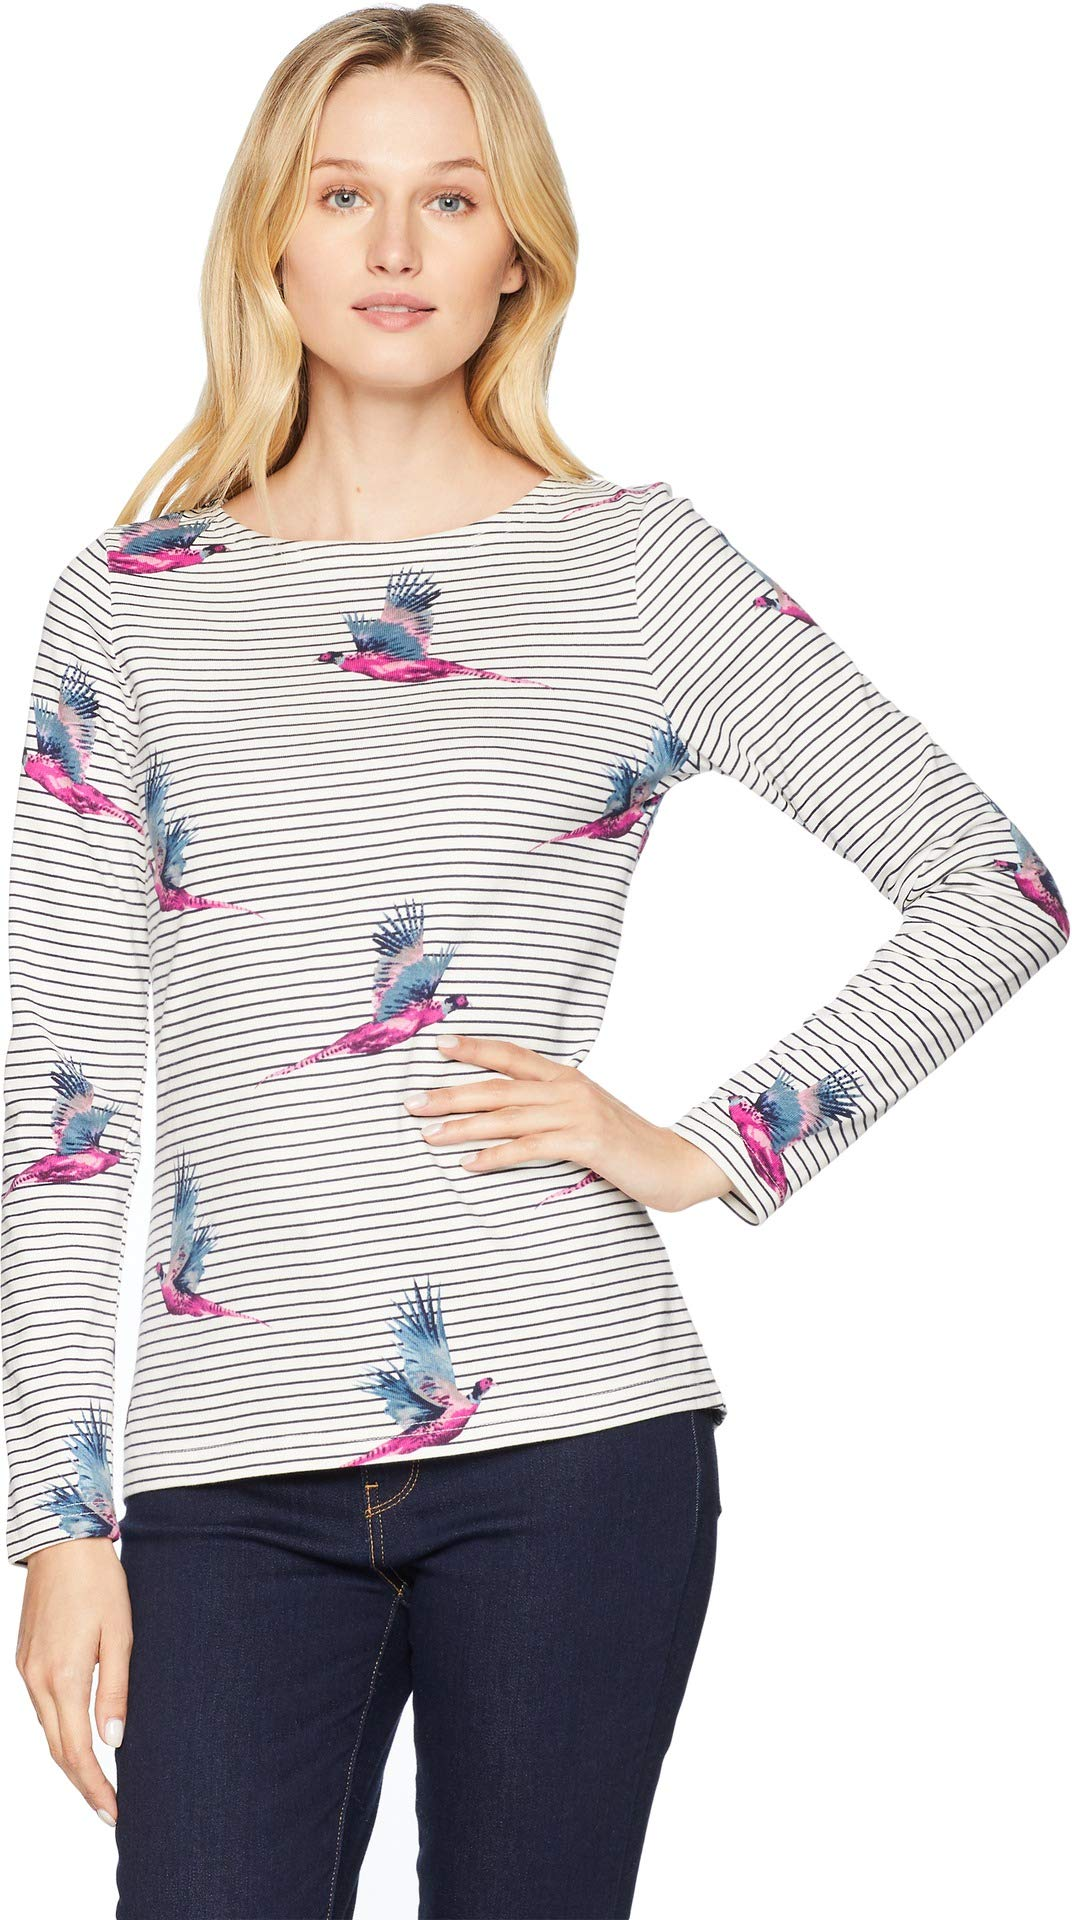 Joules Women's Harbour Printed Jersey Top Cream Painted Pheasant 2